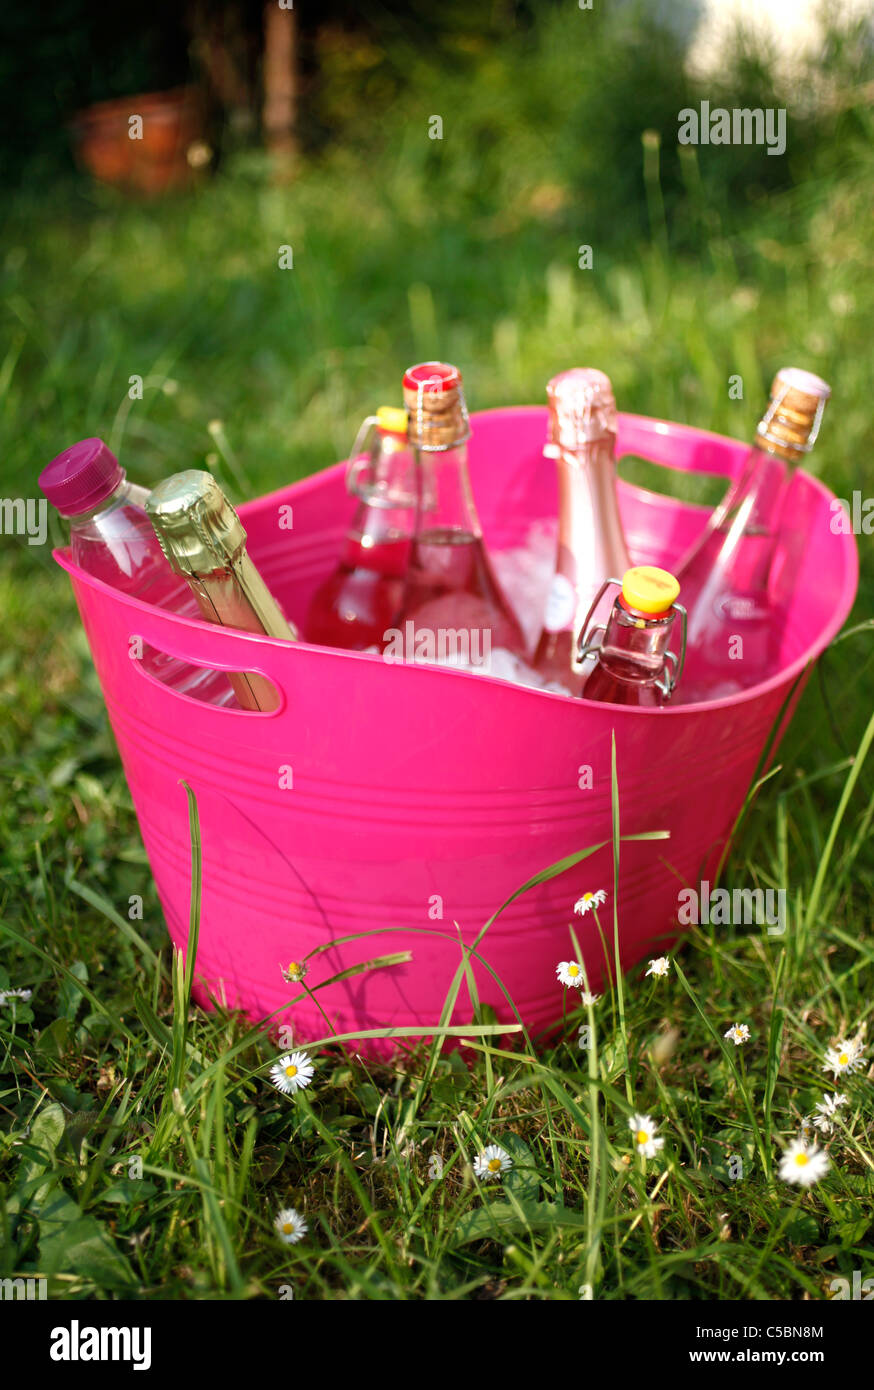 Cooling bottles  with icecubes in a huge pink plastic container in the garden Stock Photo